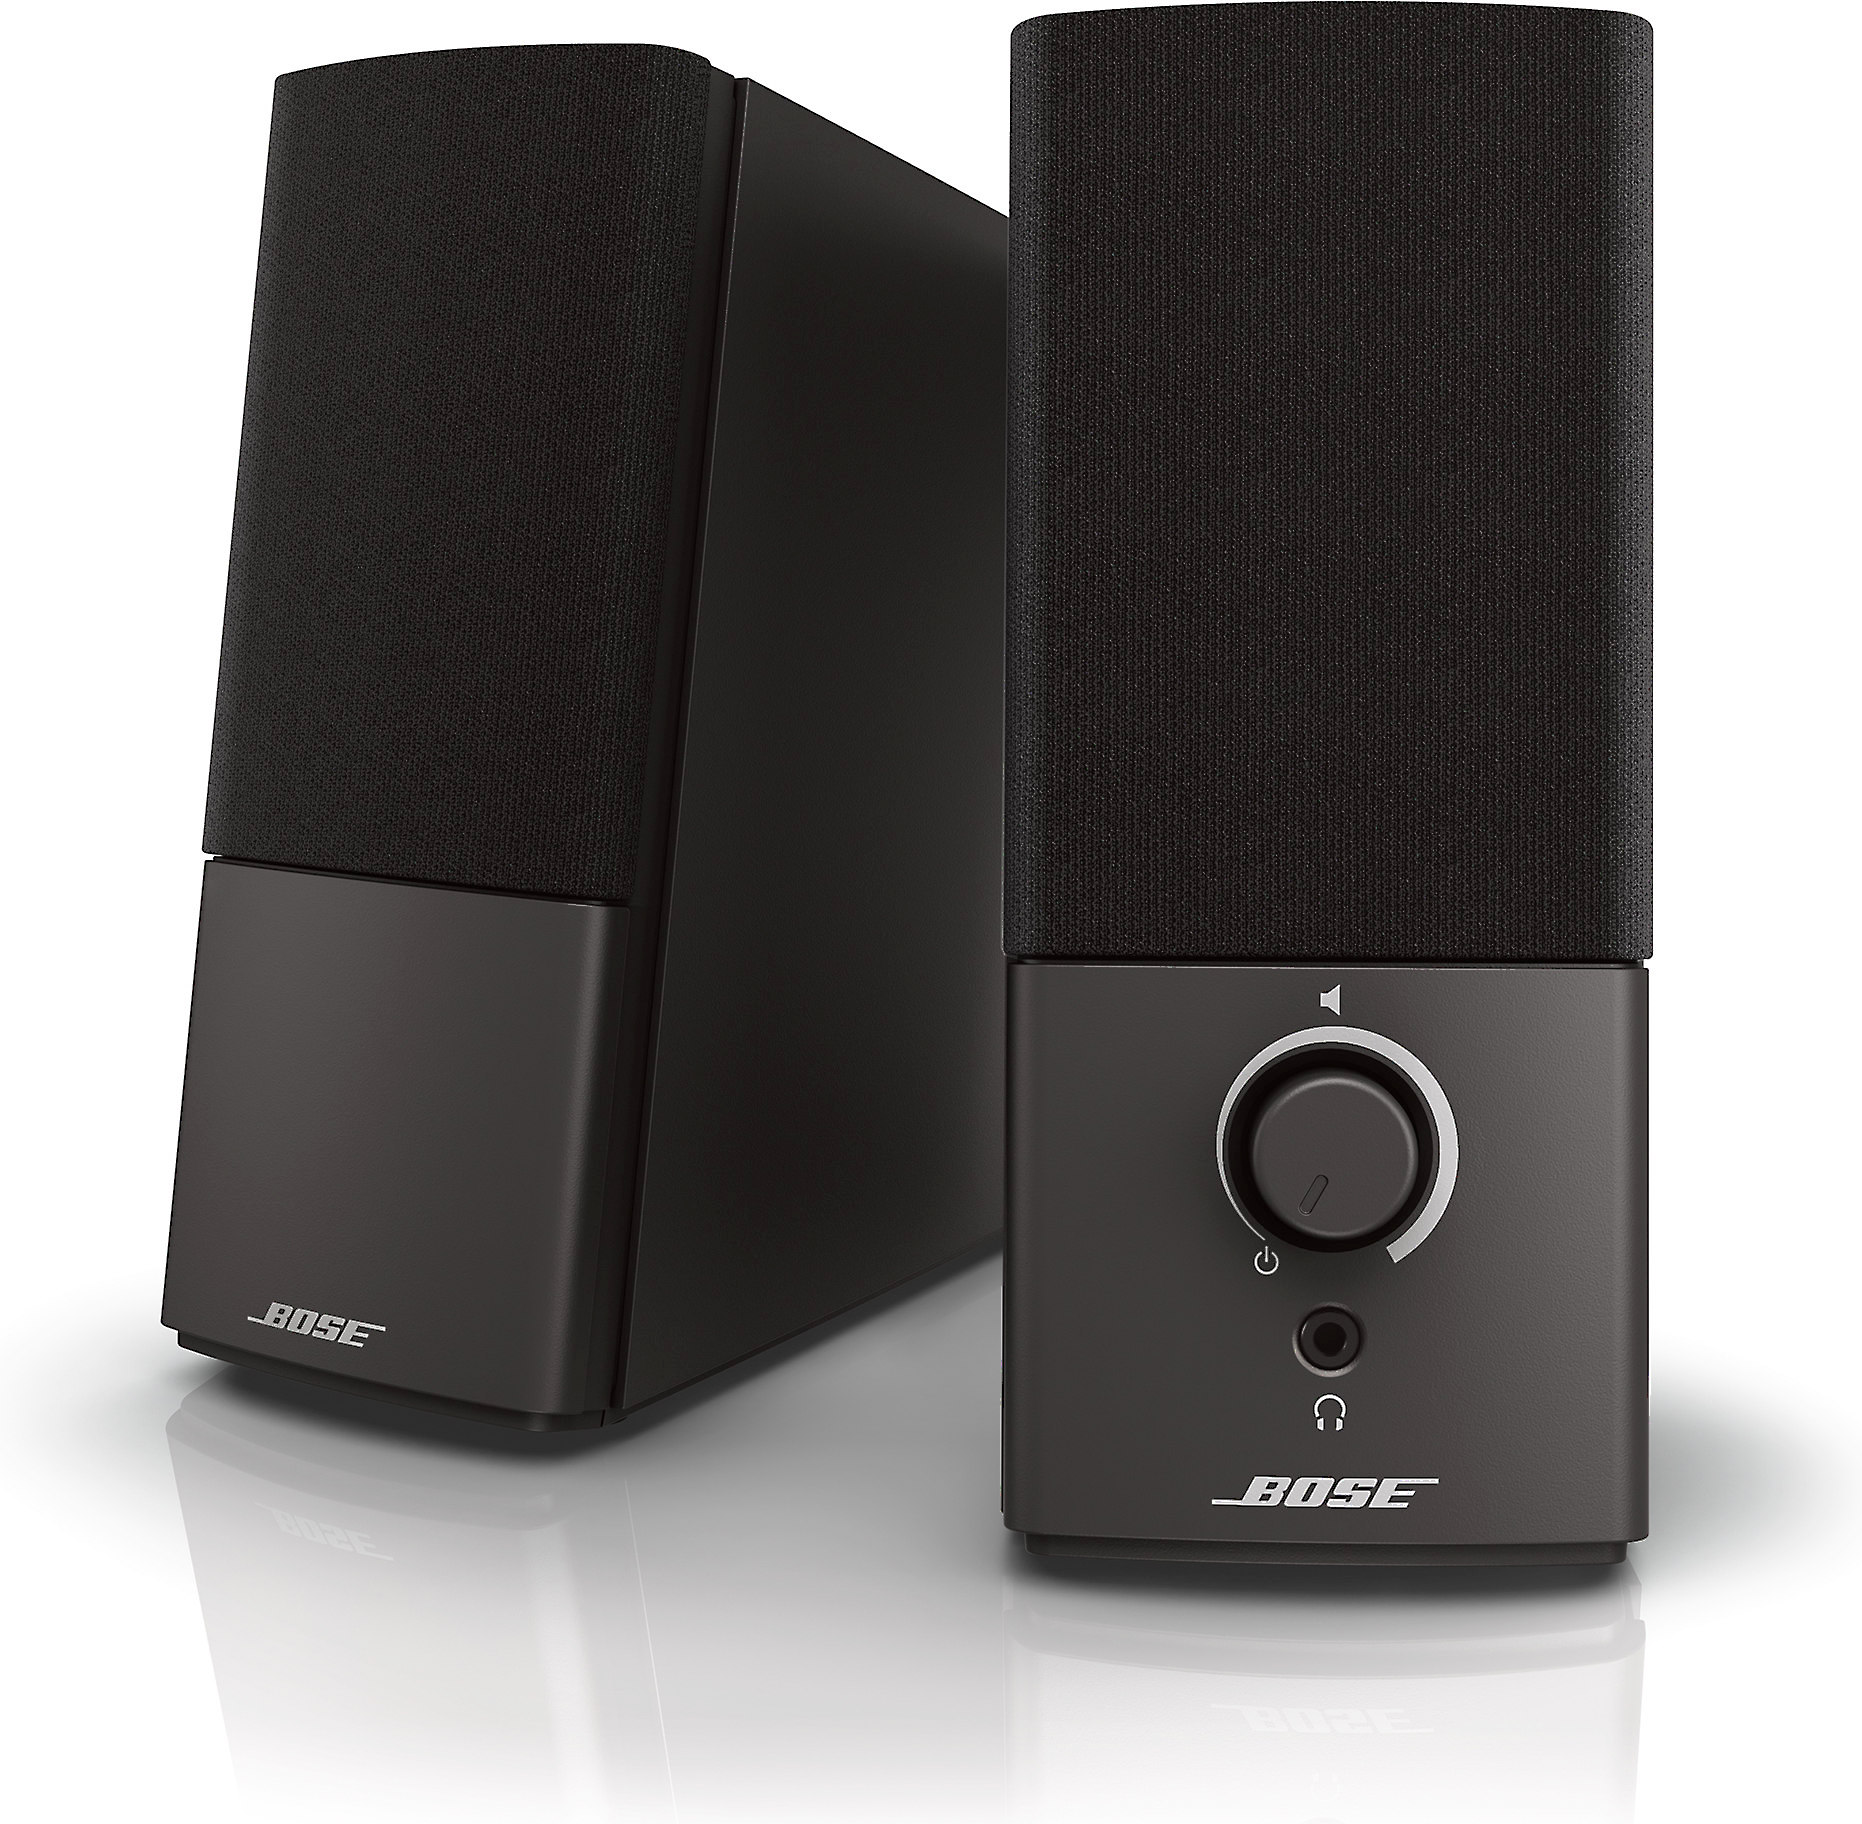 Bose Companion 2 Series Iii Multimedia Speaker System At Crutchfield